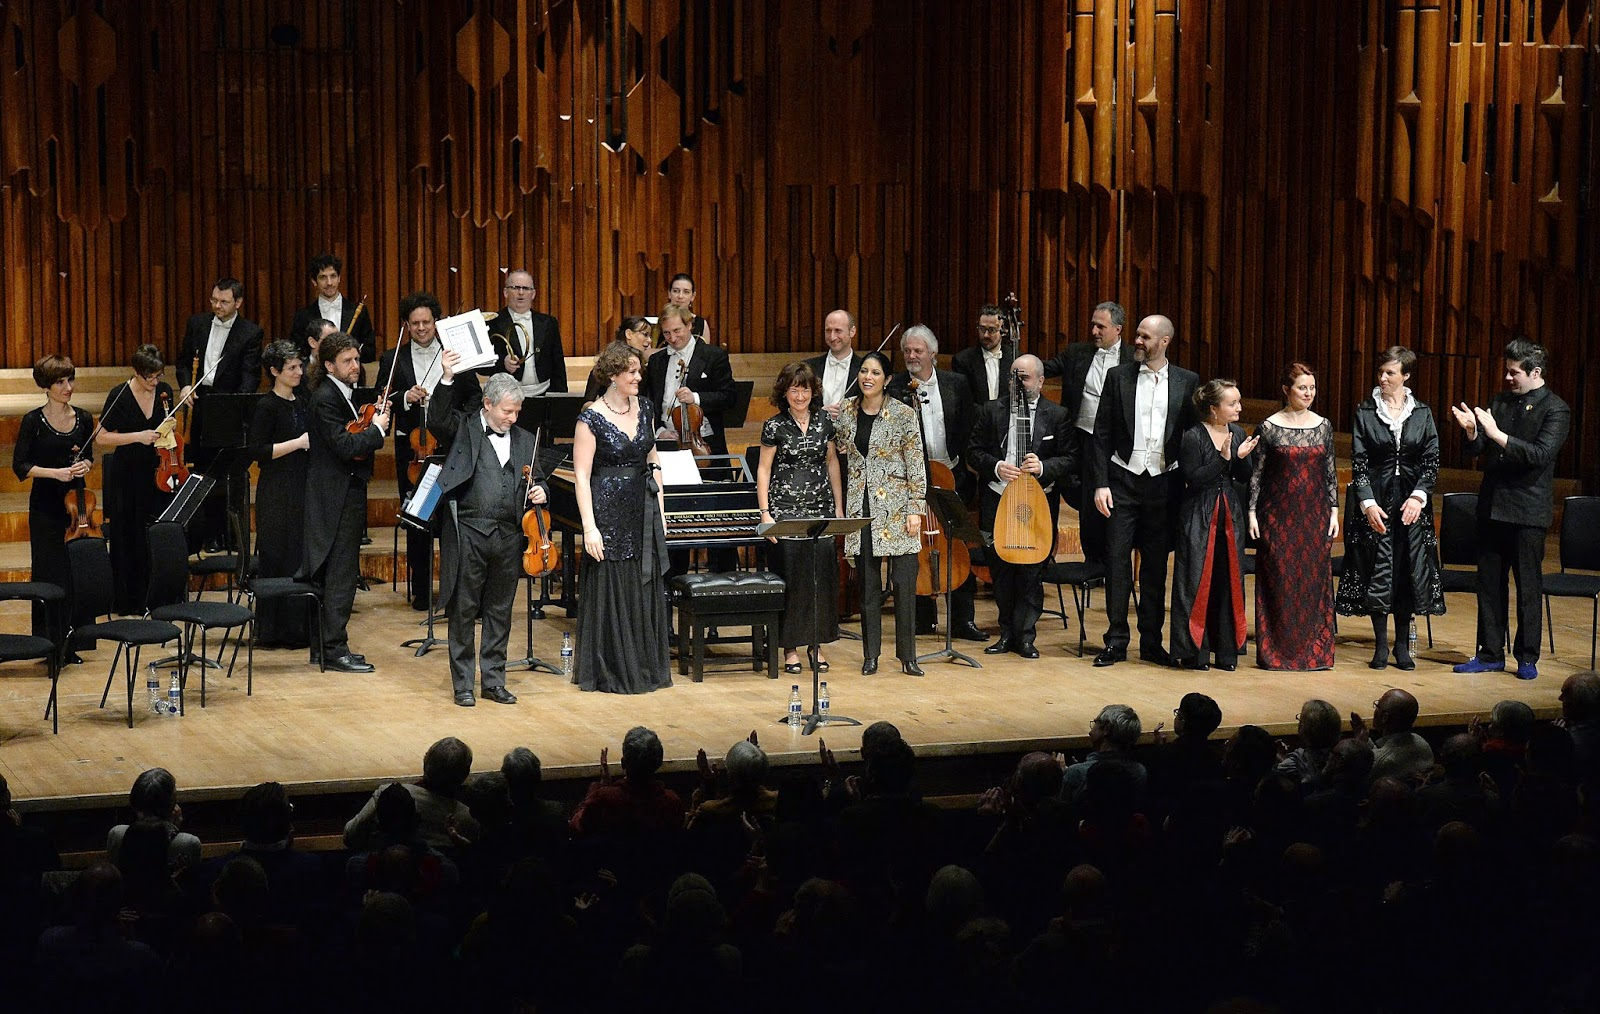 Fabio Biondi, Europa Galante and cast of Vivaldi's L'Oracolo in Messenia at the Barbican - photo Mark Allan/Barbican